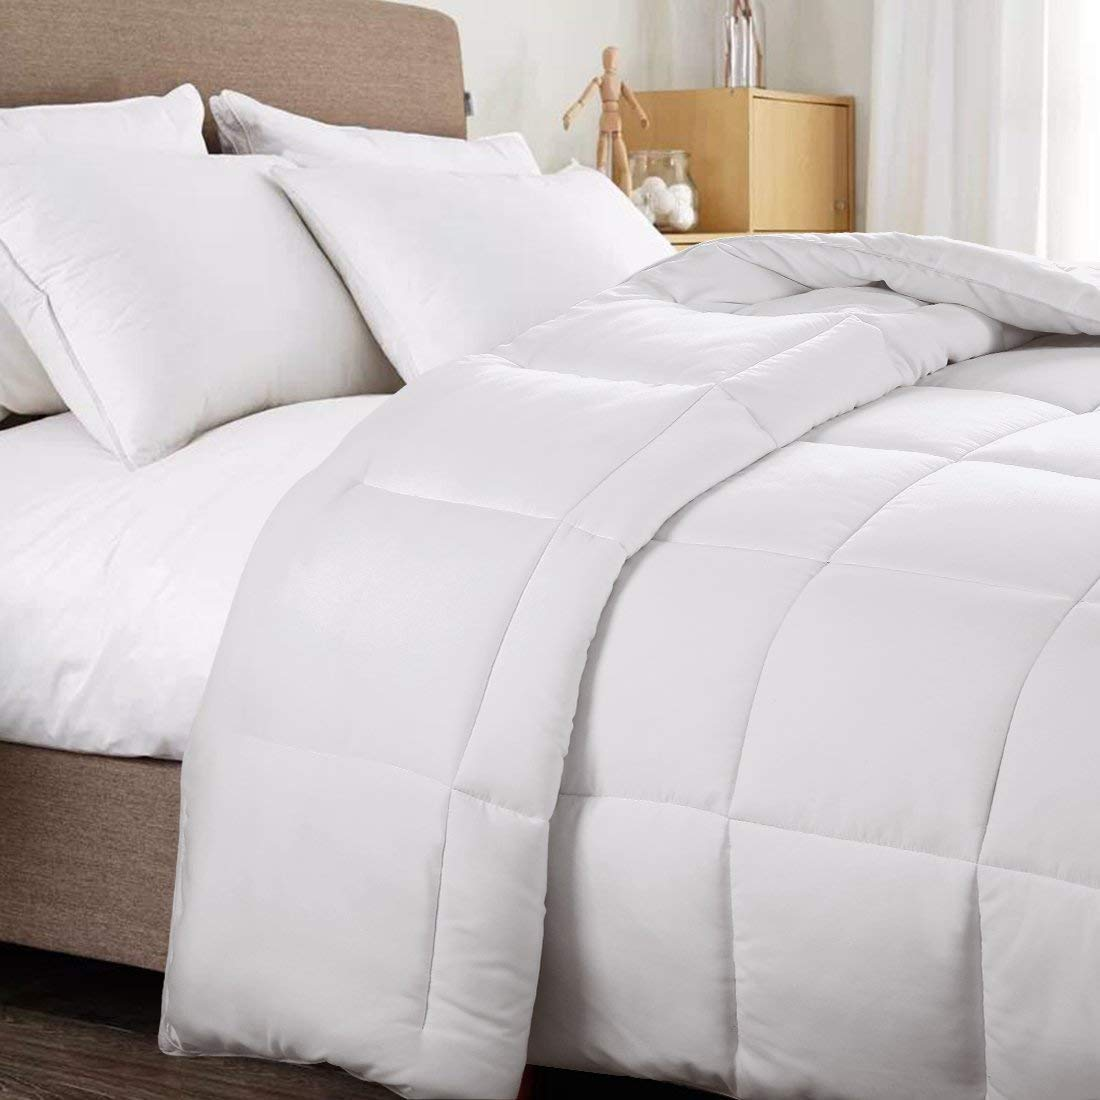 WARM HARBOR Queen All Season White Down Alternative Quilted Comforter and Duvet Insert - Luxury Hotel Collection Premium Lightweight(Queen,White) by WARM HARBOR (Image #2)